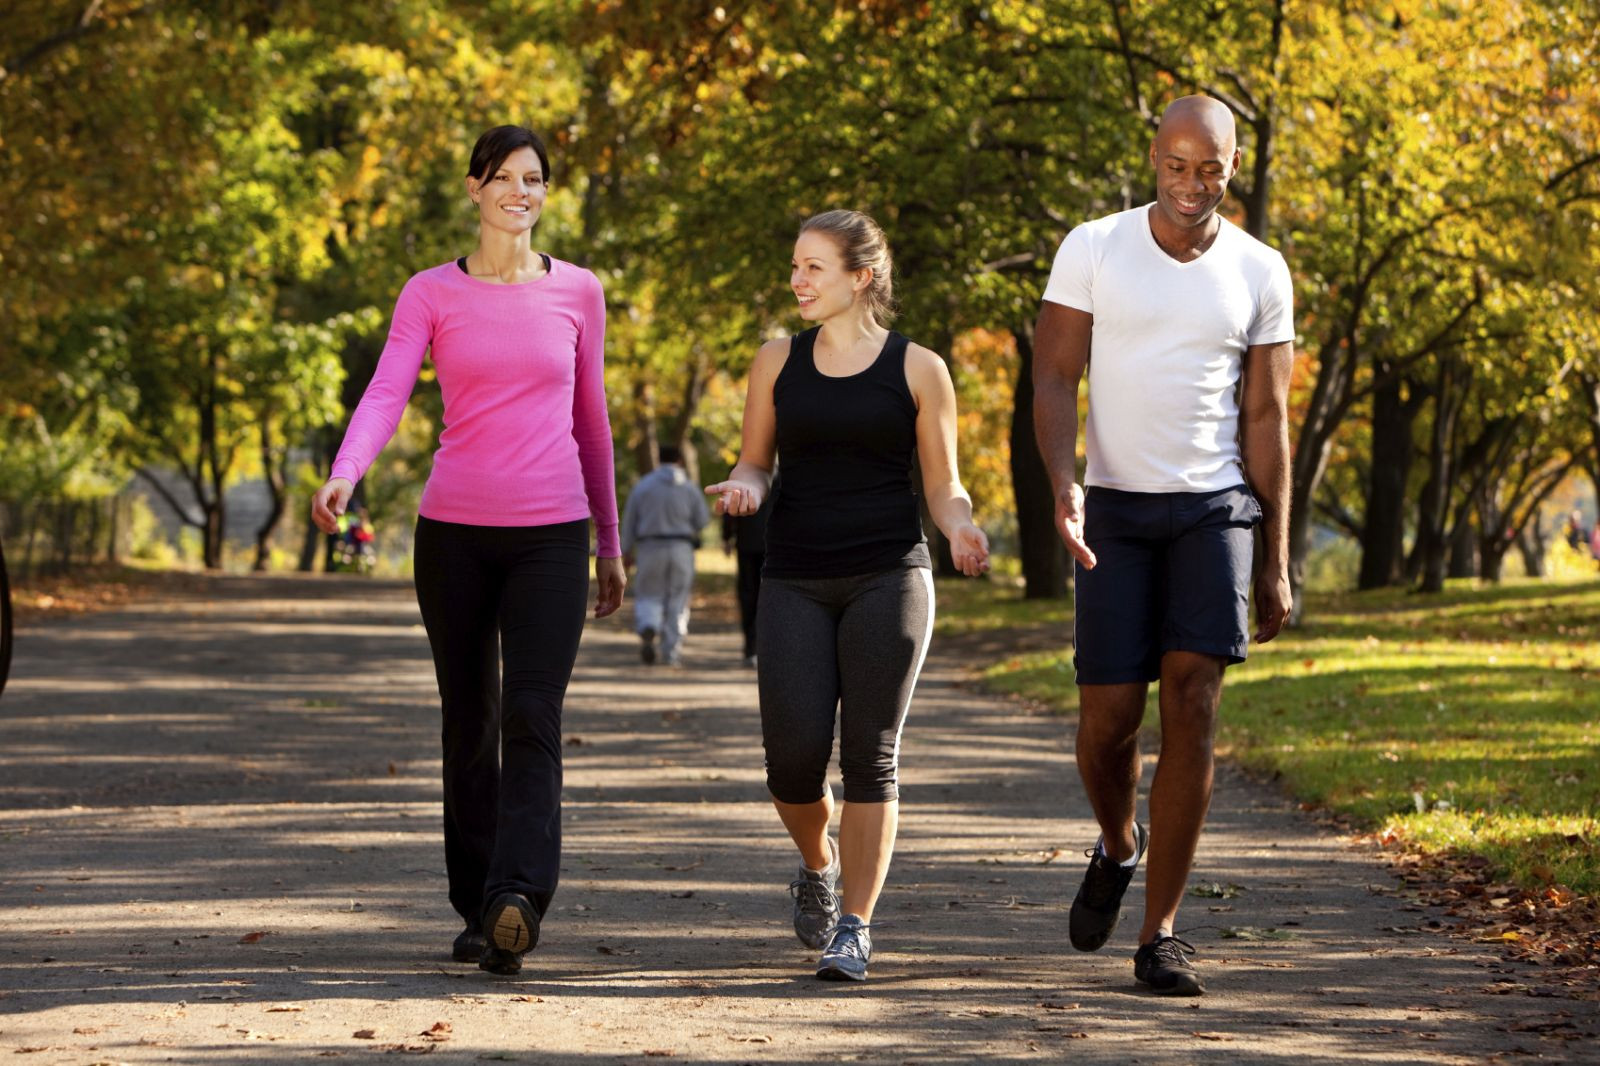 exercise as an antidote for excessive sitting?